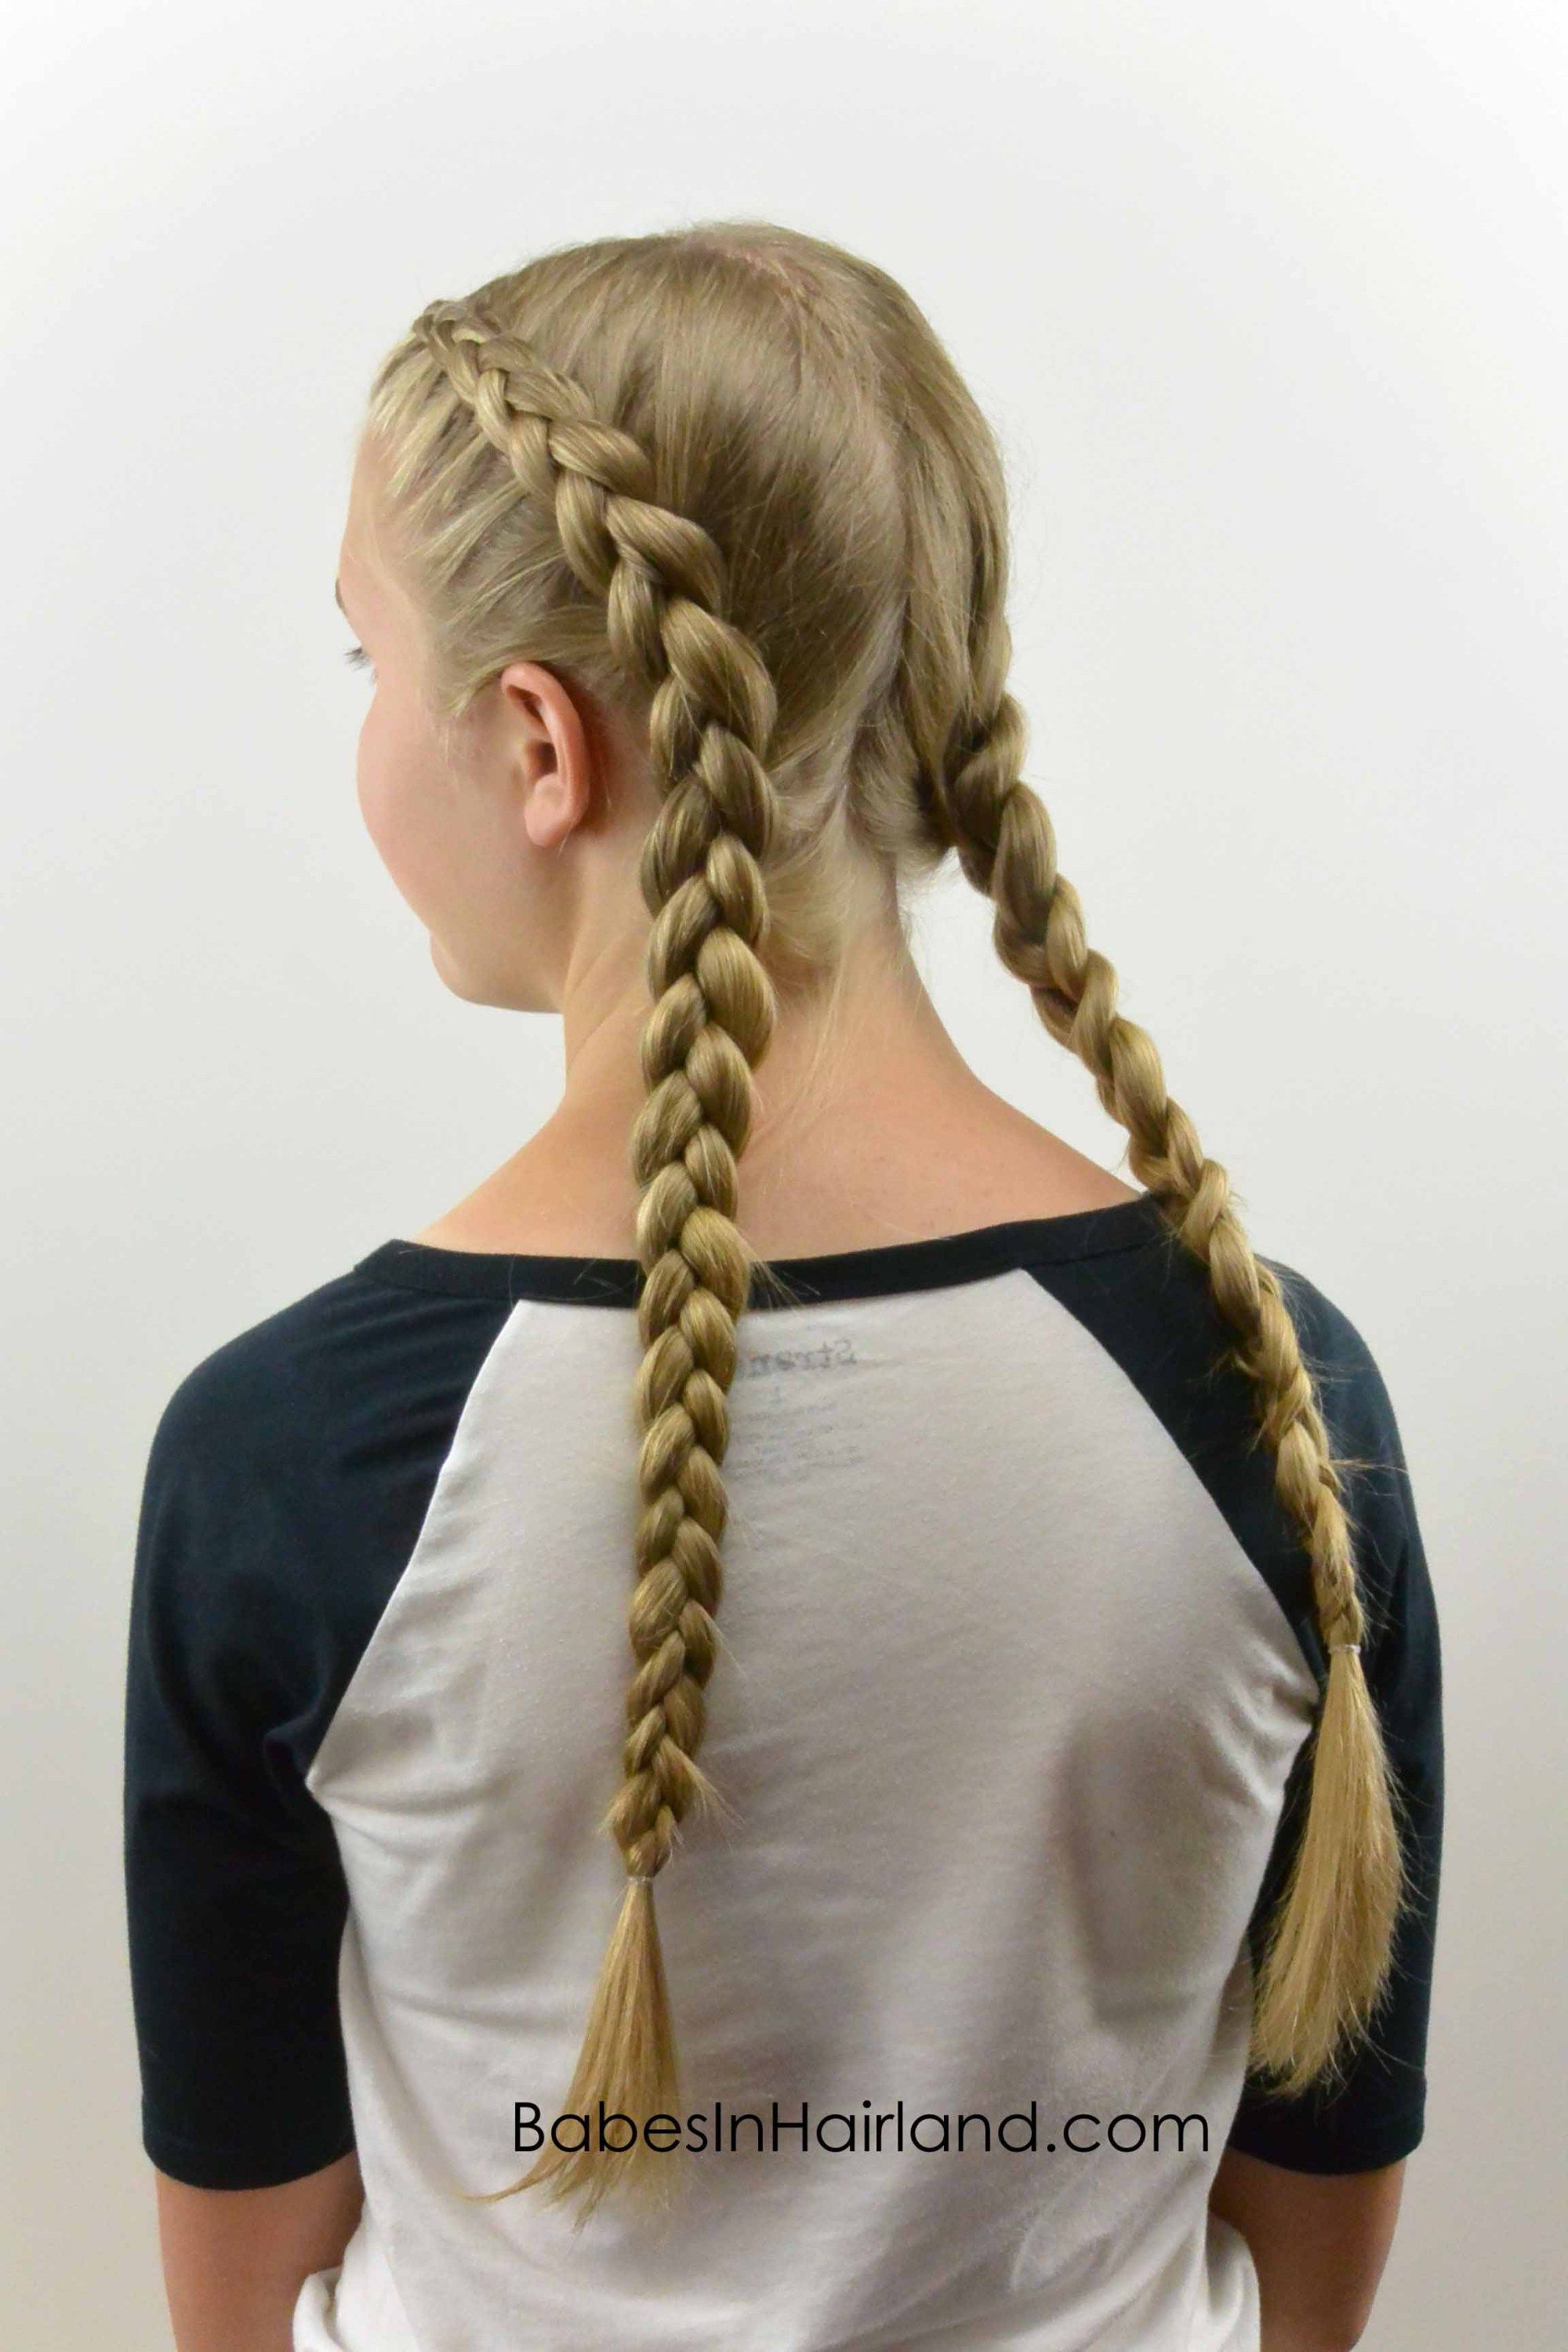 How To Tight Dutch Braids On Yourself With Images French